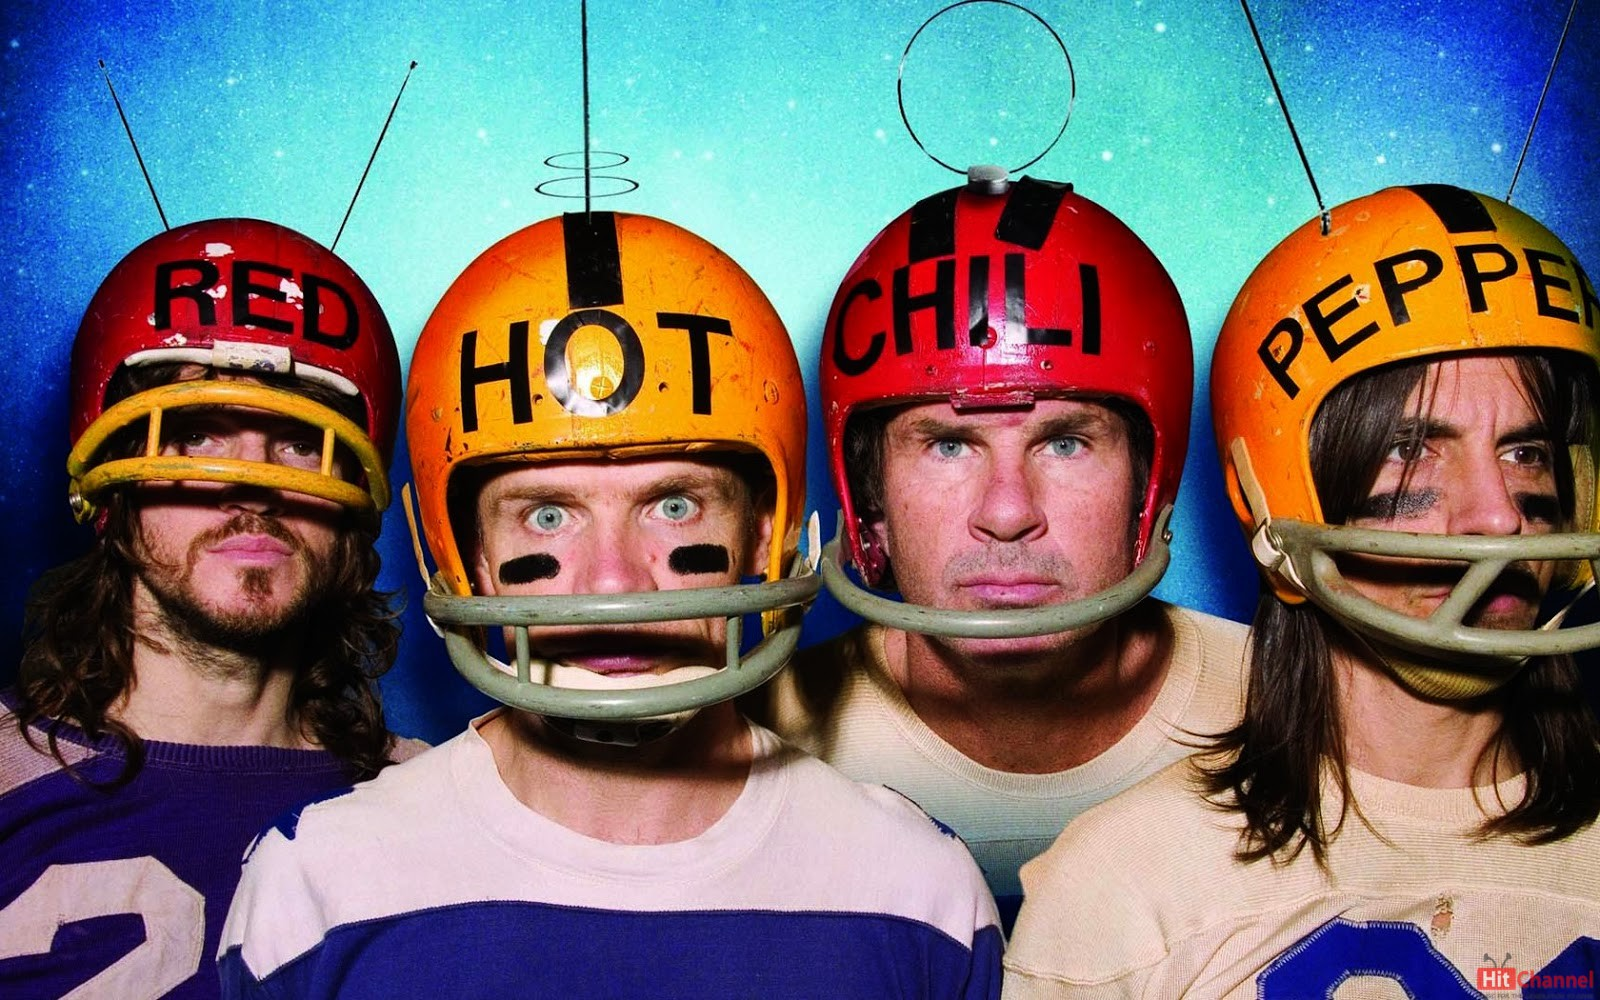 Red Hot Chili Peppers Super Bowl 2014